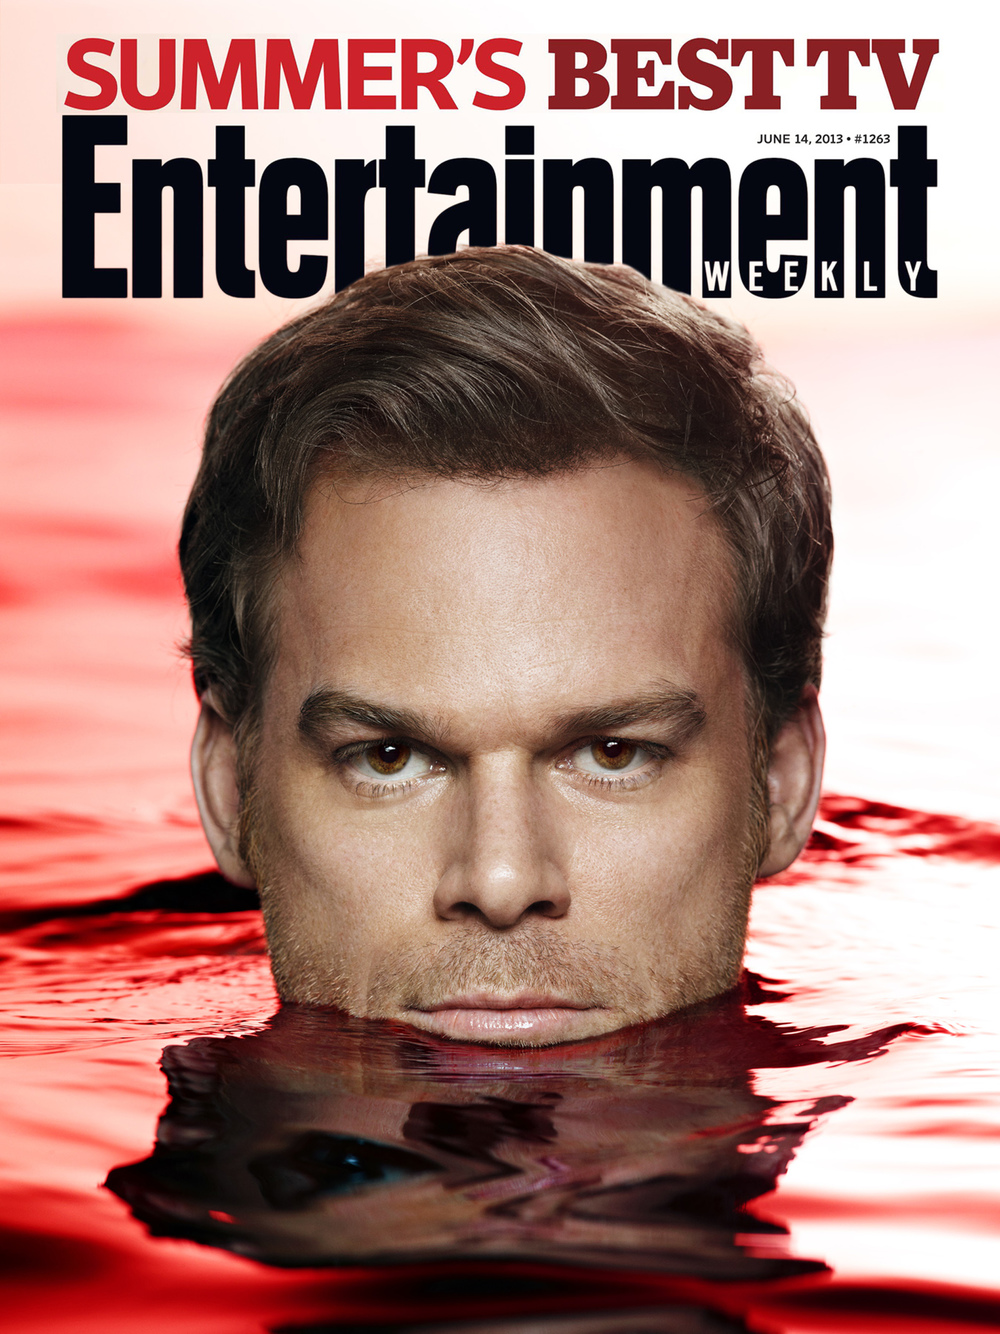 J309_JGR_06_dexter_michaelchall_blood_pool_shot06_1063_RGB_Cover.jpg